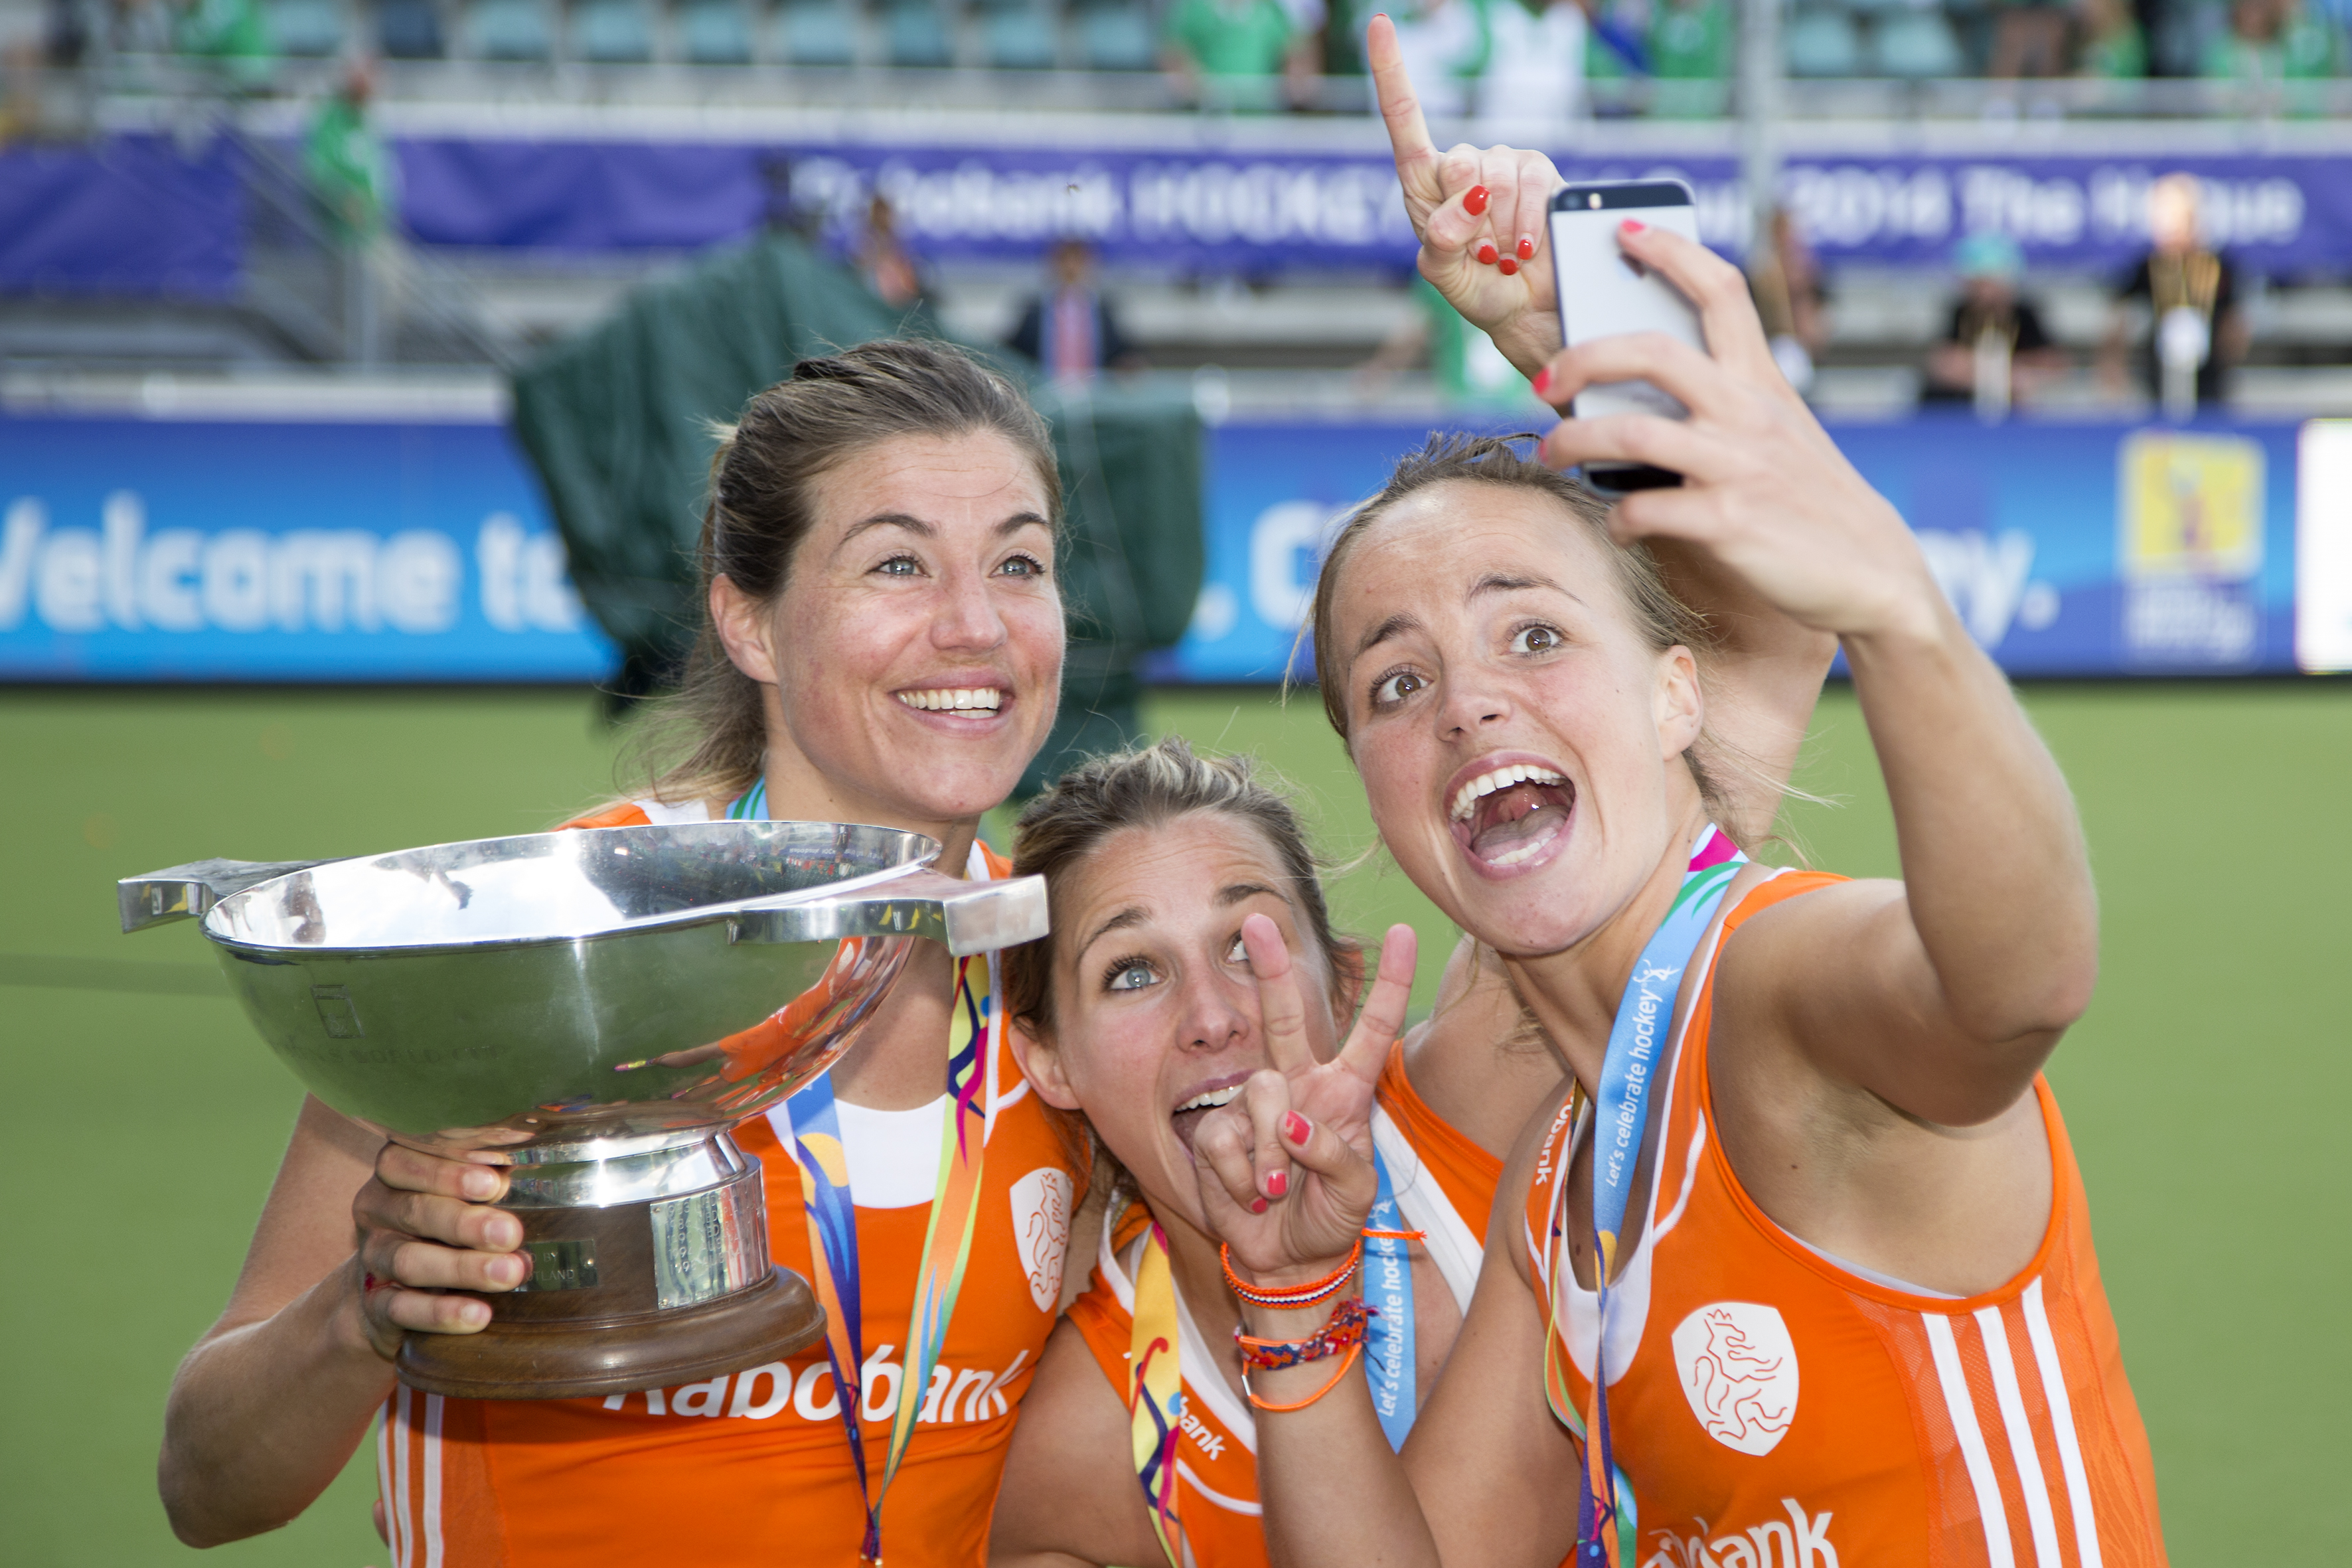 THE HAGUE - Rabobank Hockey World Cup 2014 - 14-06-2014 - WOMEN - FINAL NETHERLANDS - AUSTRALIA 2-0 - DAMES NEDERLAND WERELDKAMPIOEN HOCKEY - KIM LAMMERS - ELLEN HOOG EN MAARTJE PAUMEN MET DE WERELDBEKER - SELFIE Copyright: Willem Vernes